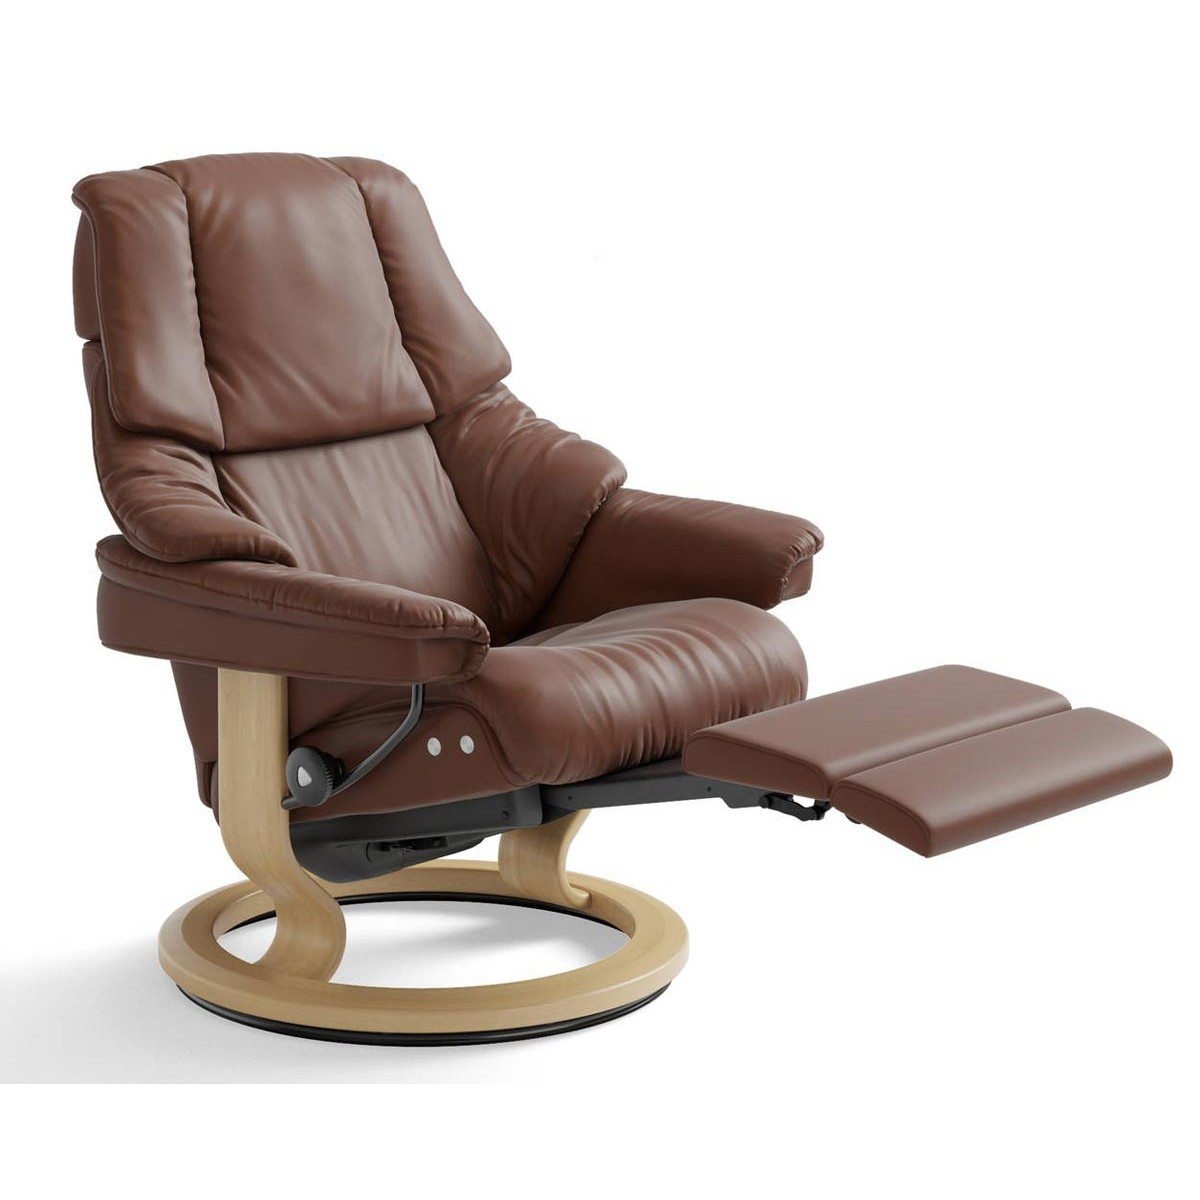 Stressless Wing Classic Legcomfort Stressless Reno Classic Legcomfort From 3 095 00 By